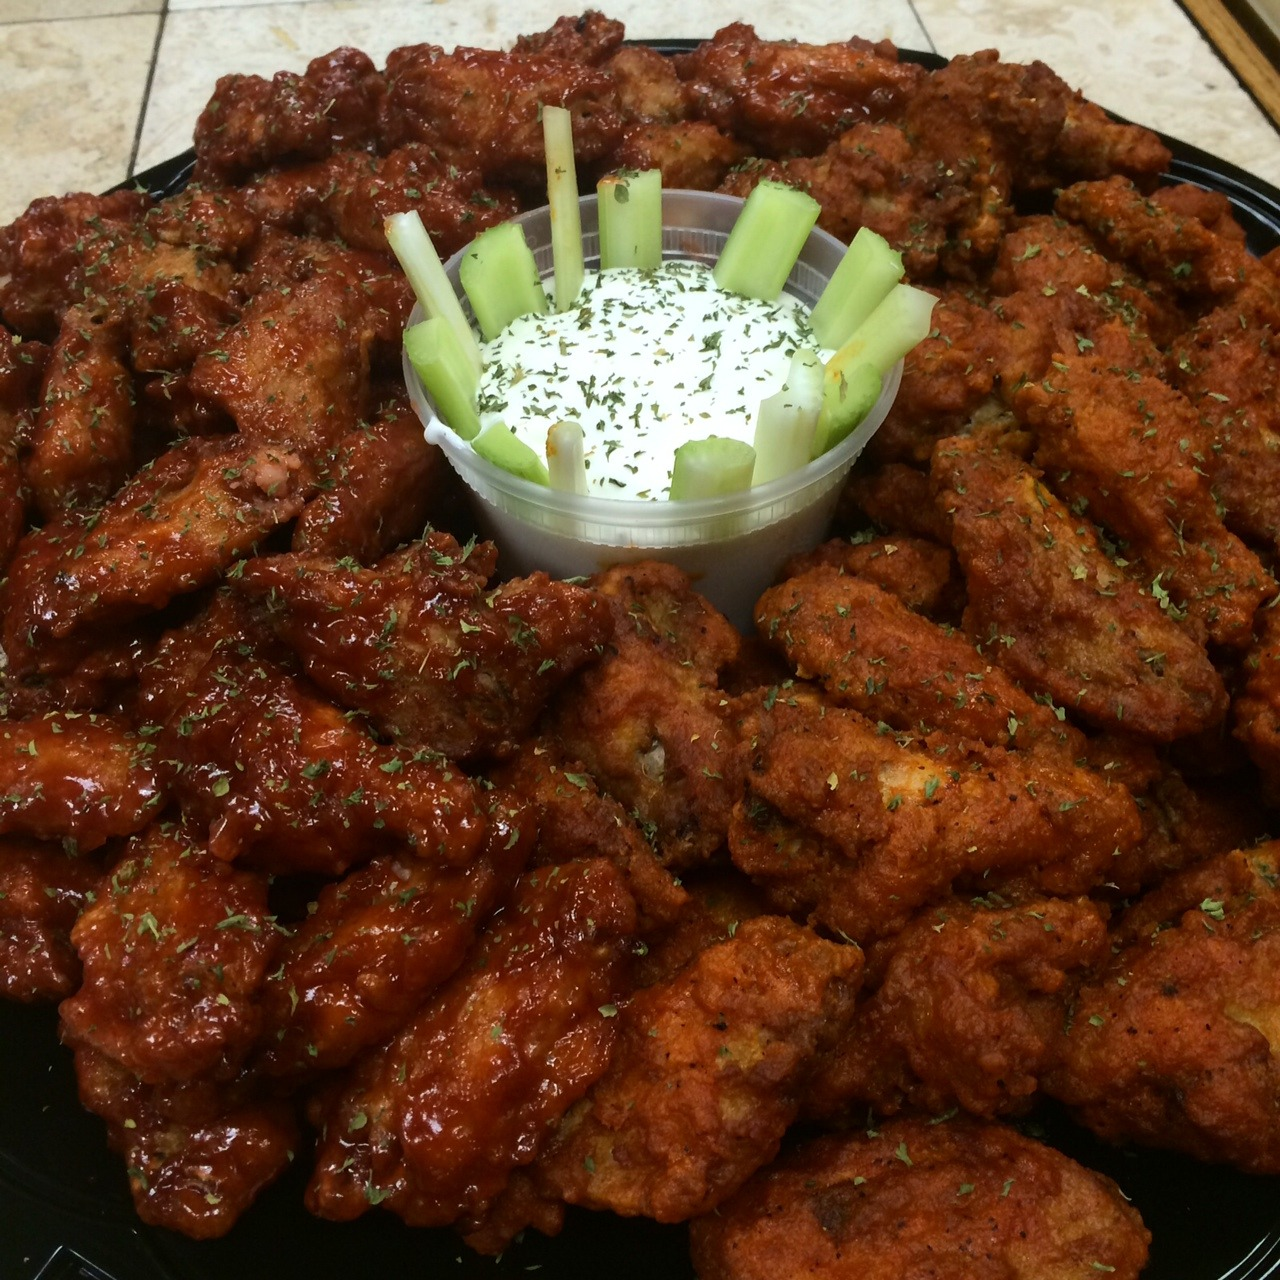 e7f7842ad646a9fb2600_Nick_s_Pizza_wings.jpg